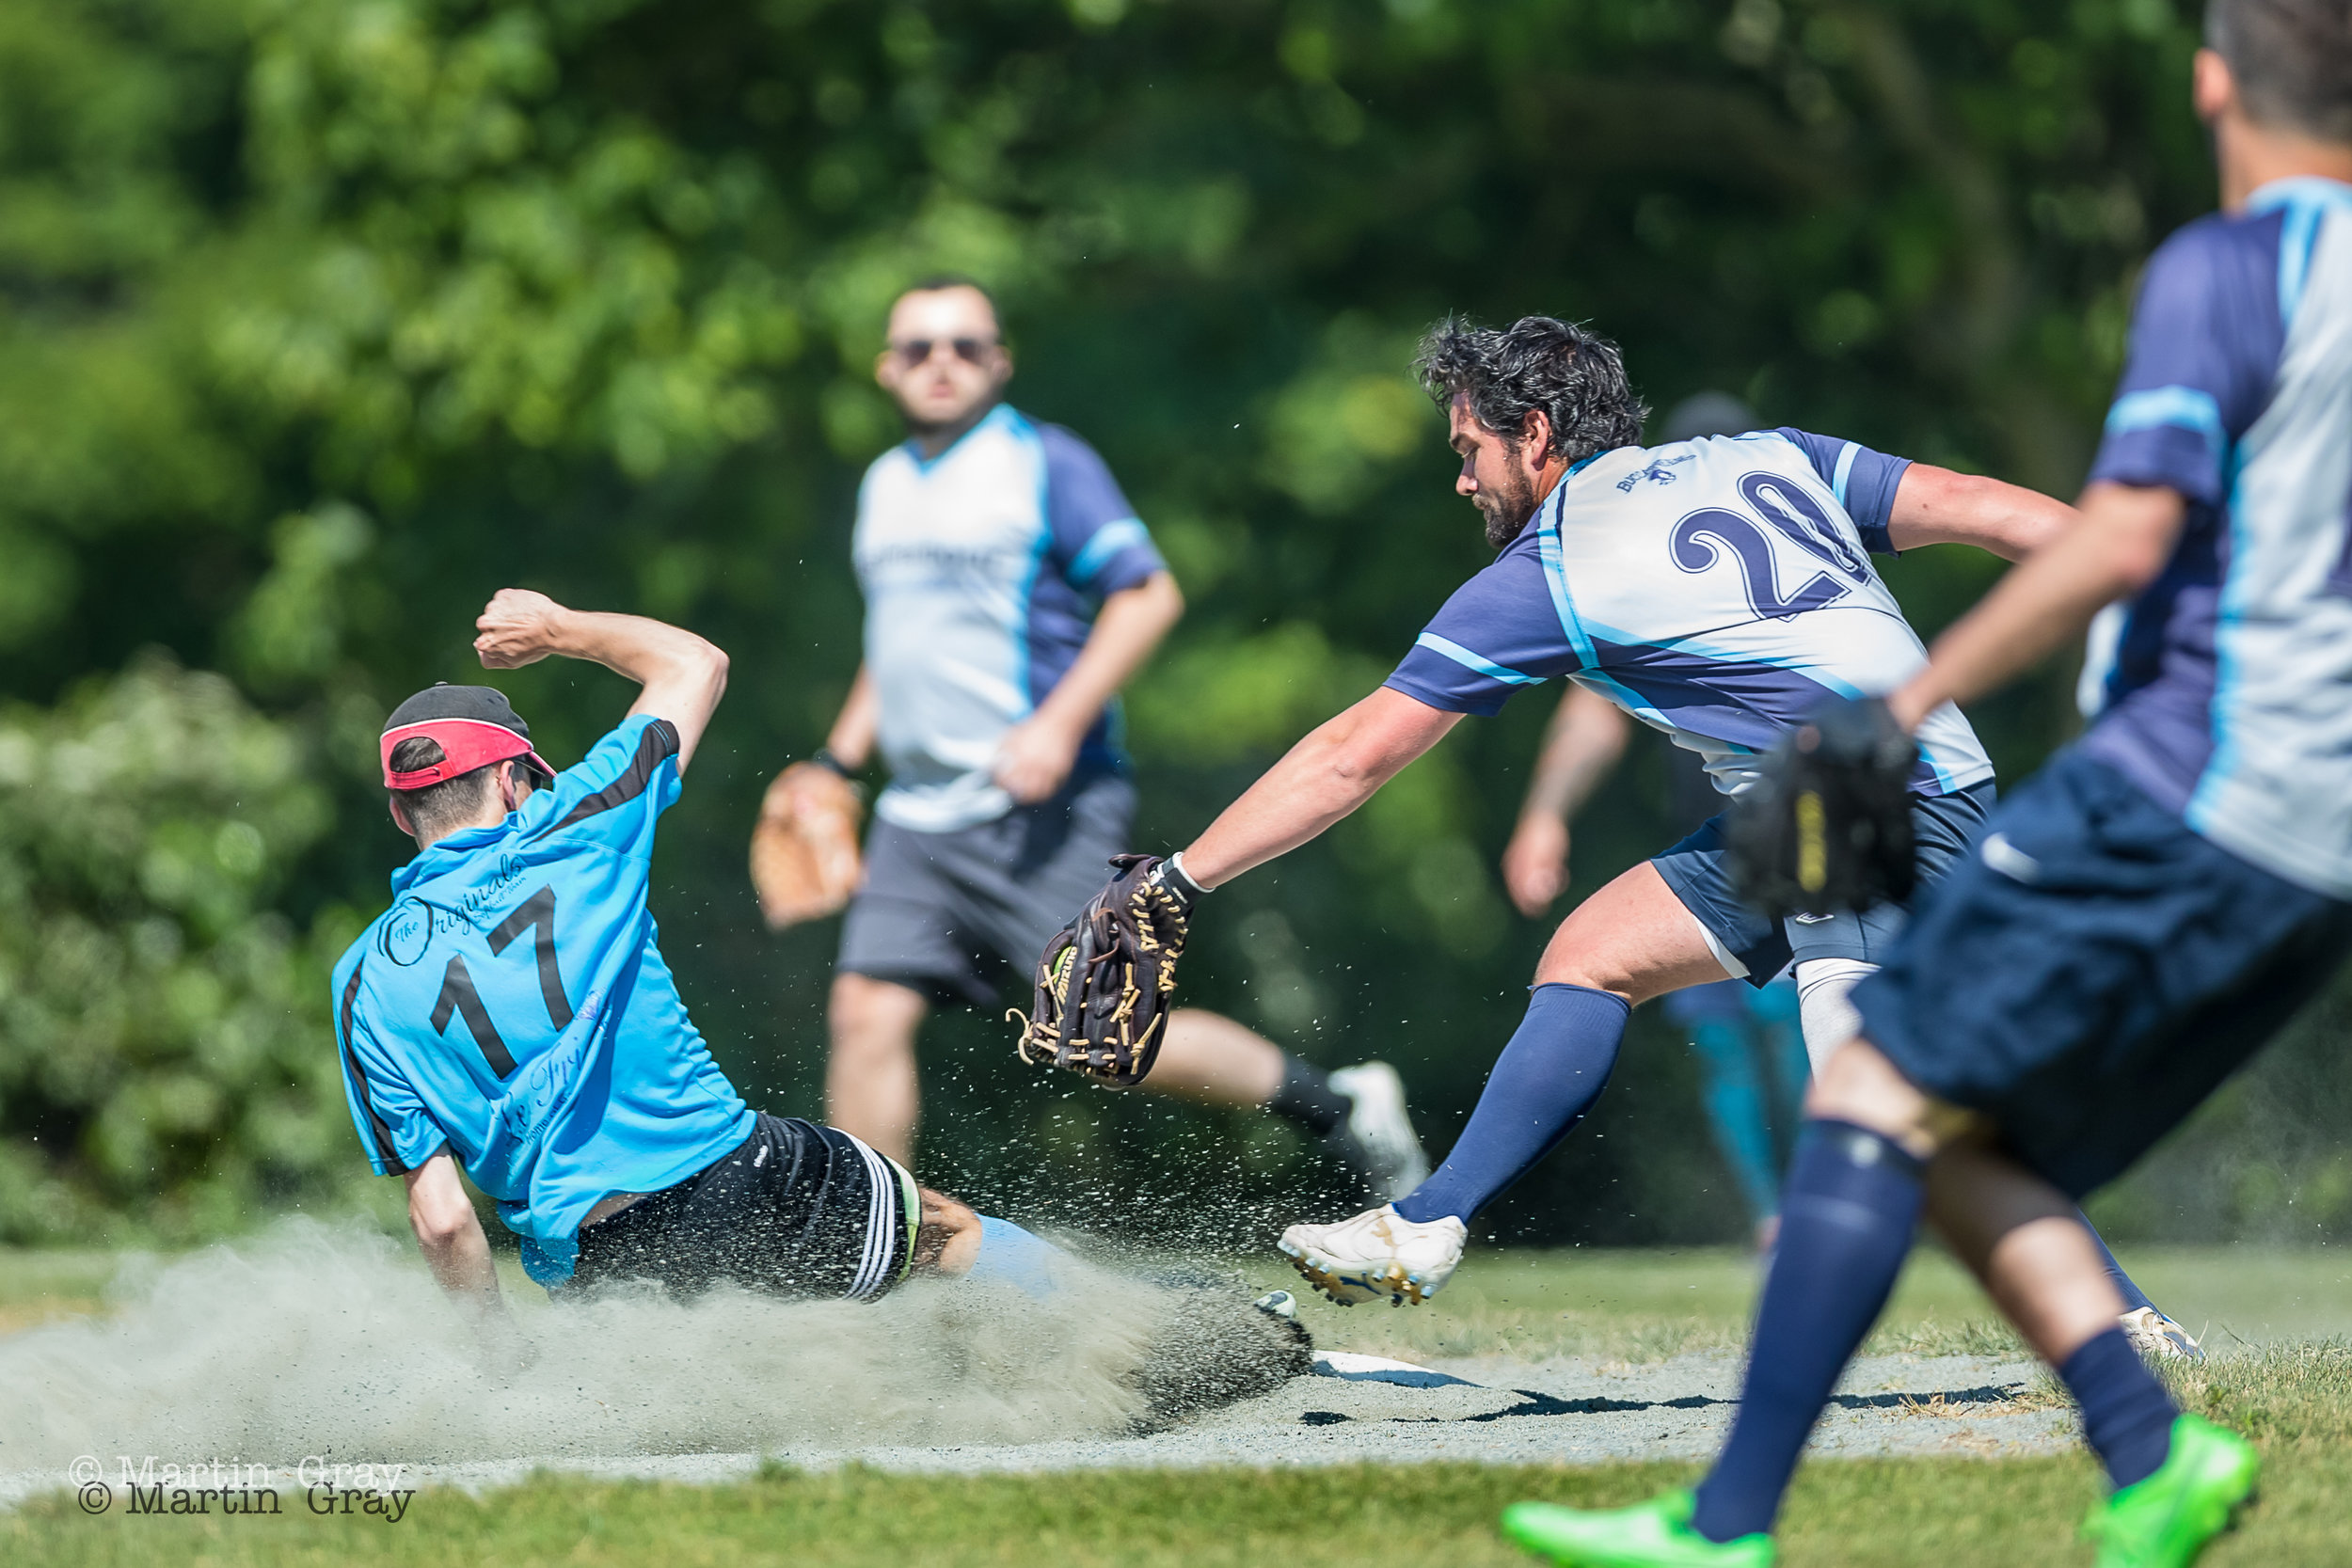 A selection of images from the pre-Final games in the Guernsey Softball CO-ED Slowpitch Tournament... The Final between Tomahawks and Hornets will follow...shortly!